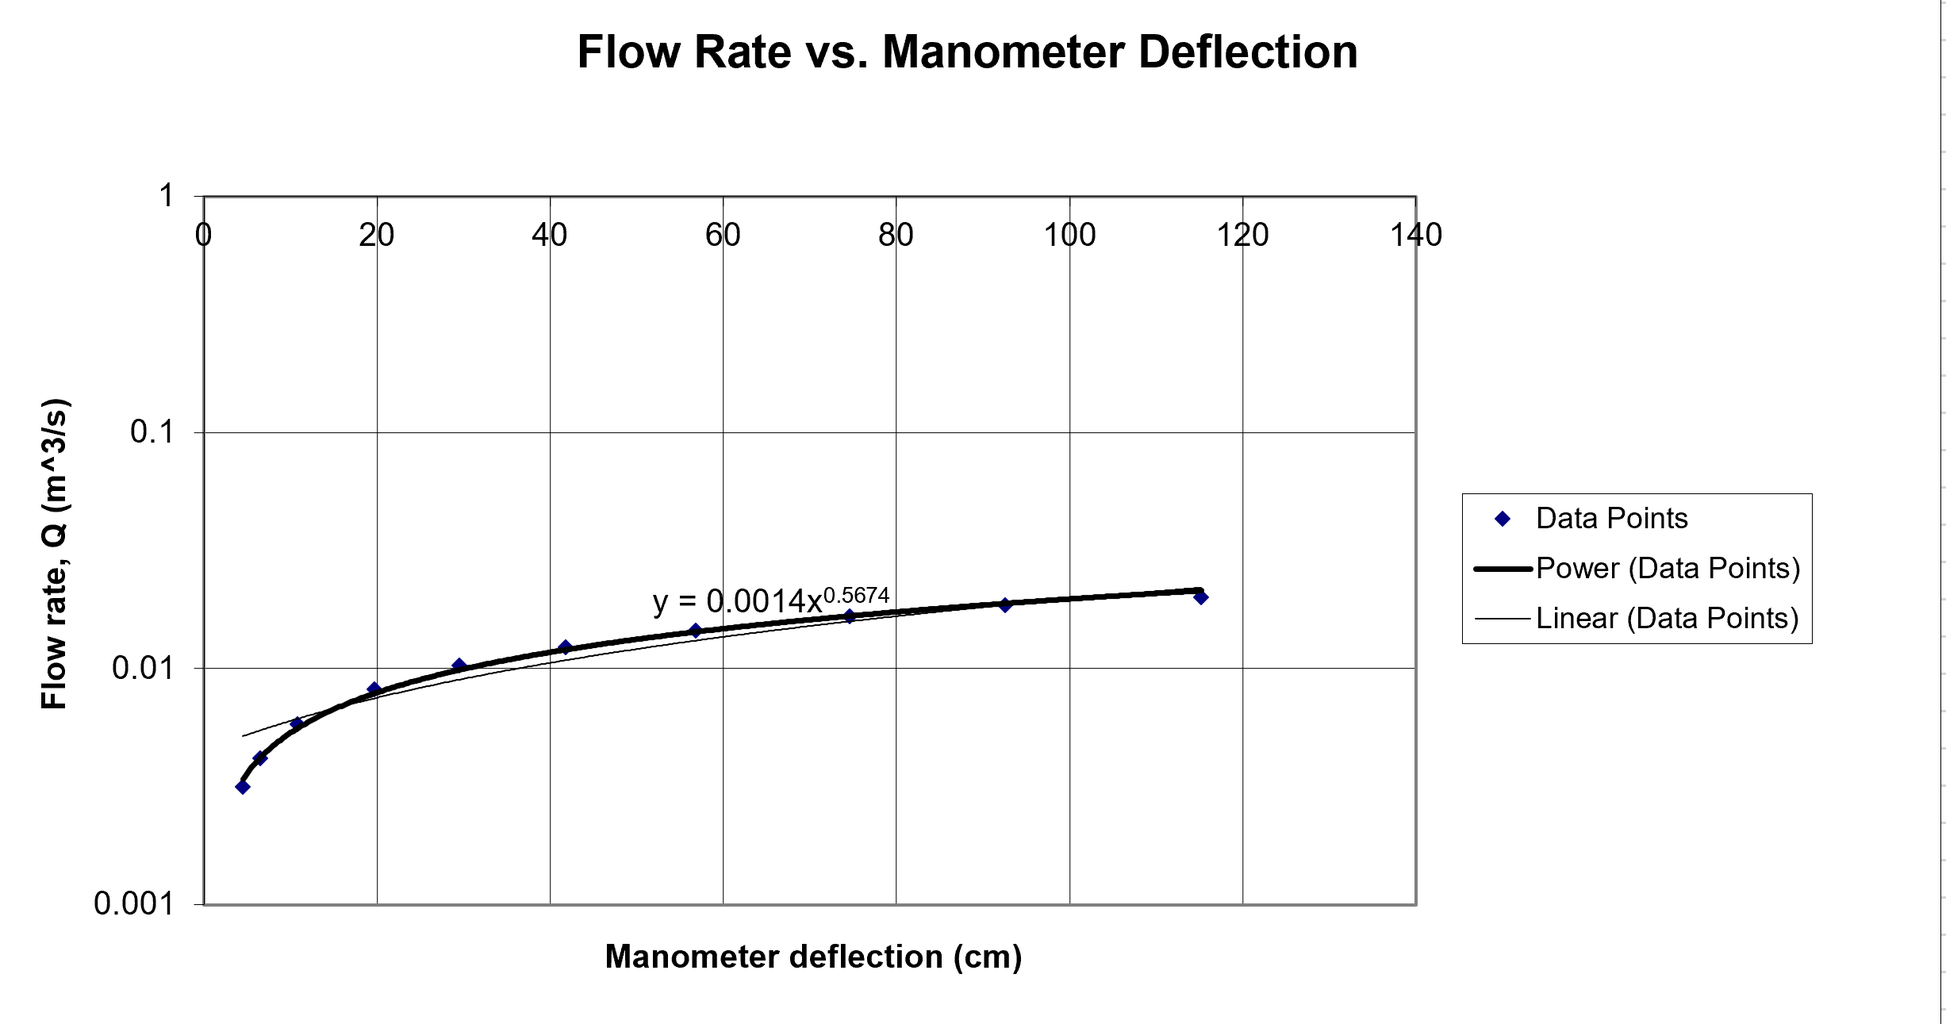 Measured Flow Rate Q As a Function of the Manometer Deflection